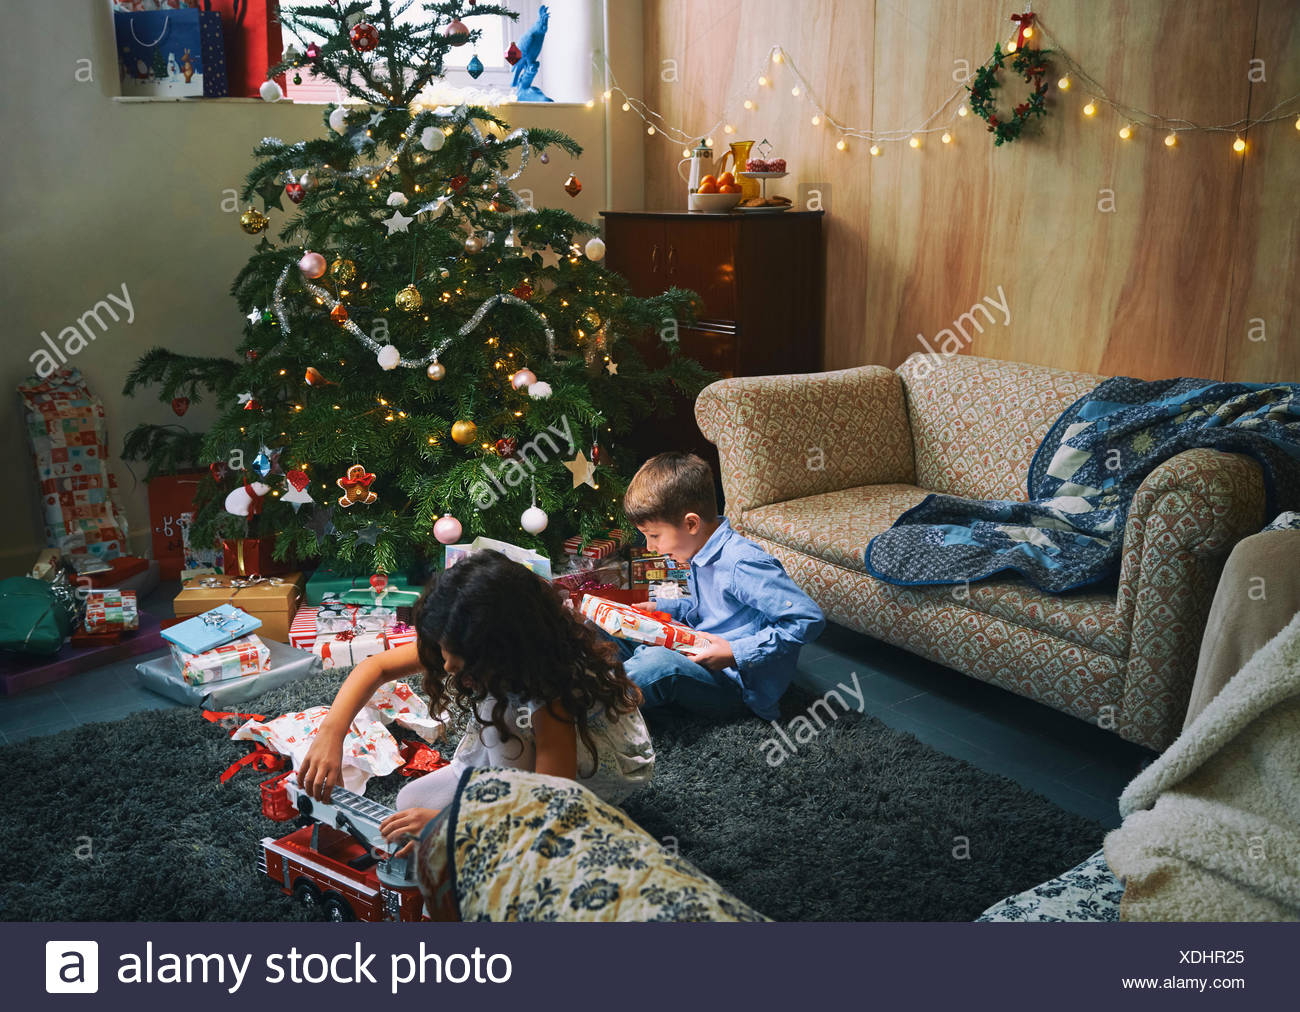 Family Unwrapping Gifts Christmas Tree Stockfotos & Family ...